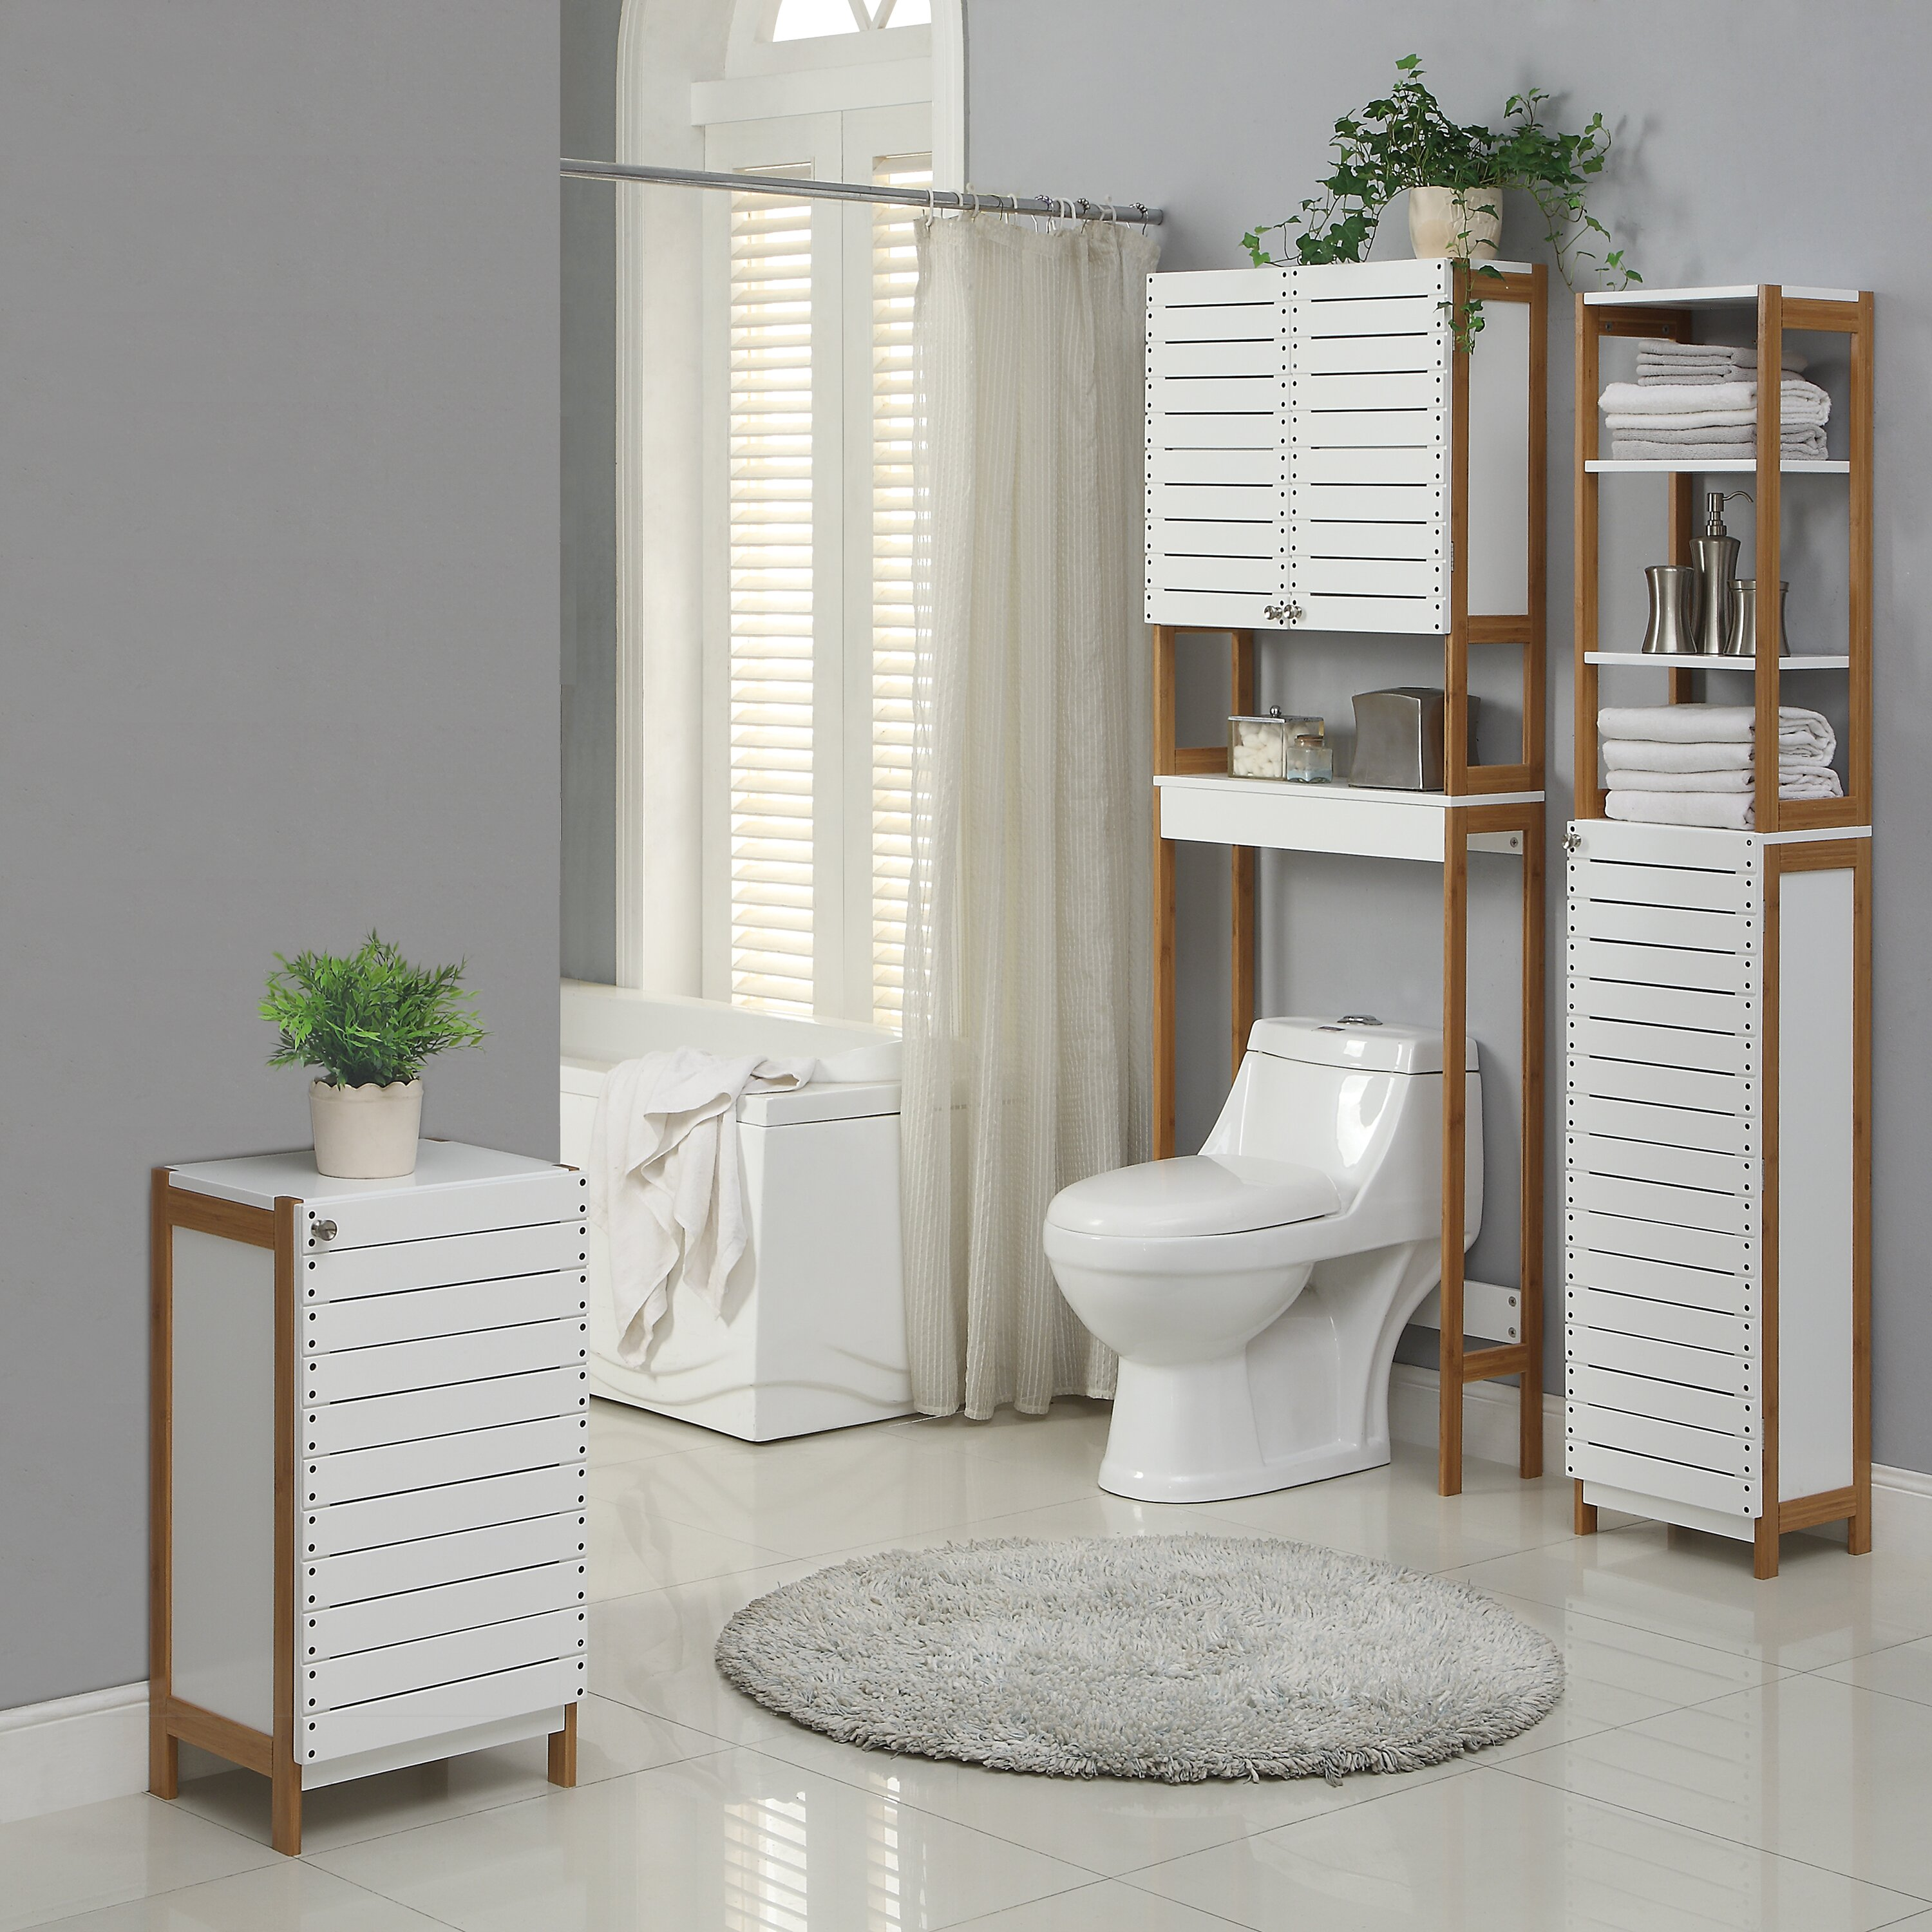 Oia Rendition 23 62 Quot W X 70 25 Quot H Over The Toilet Storage